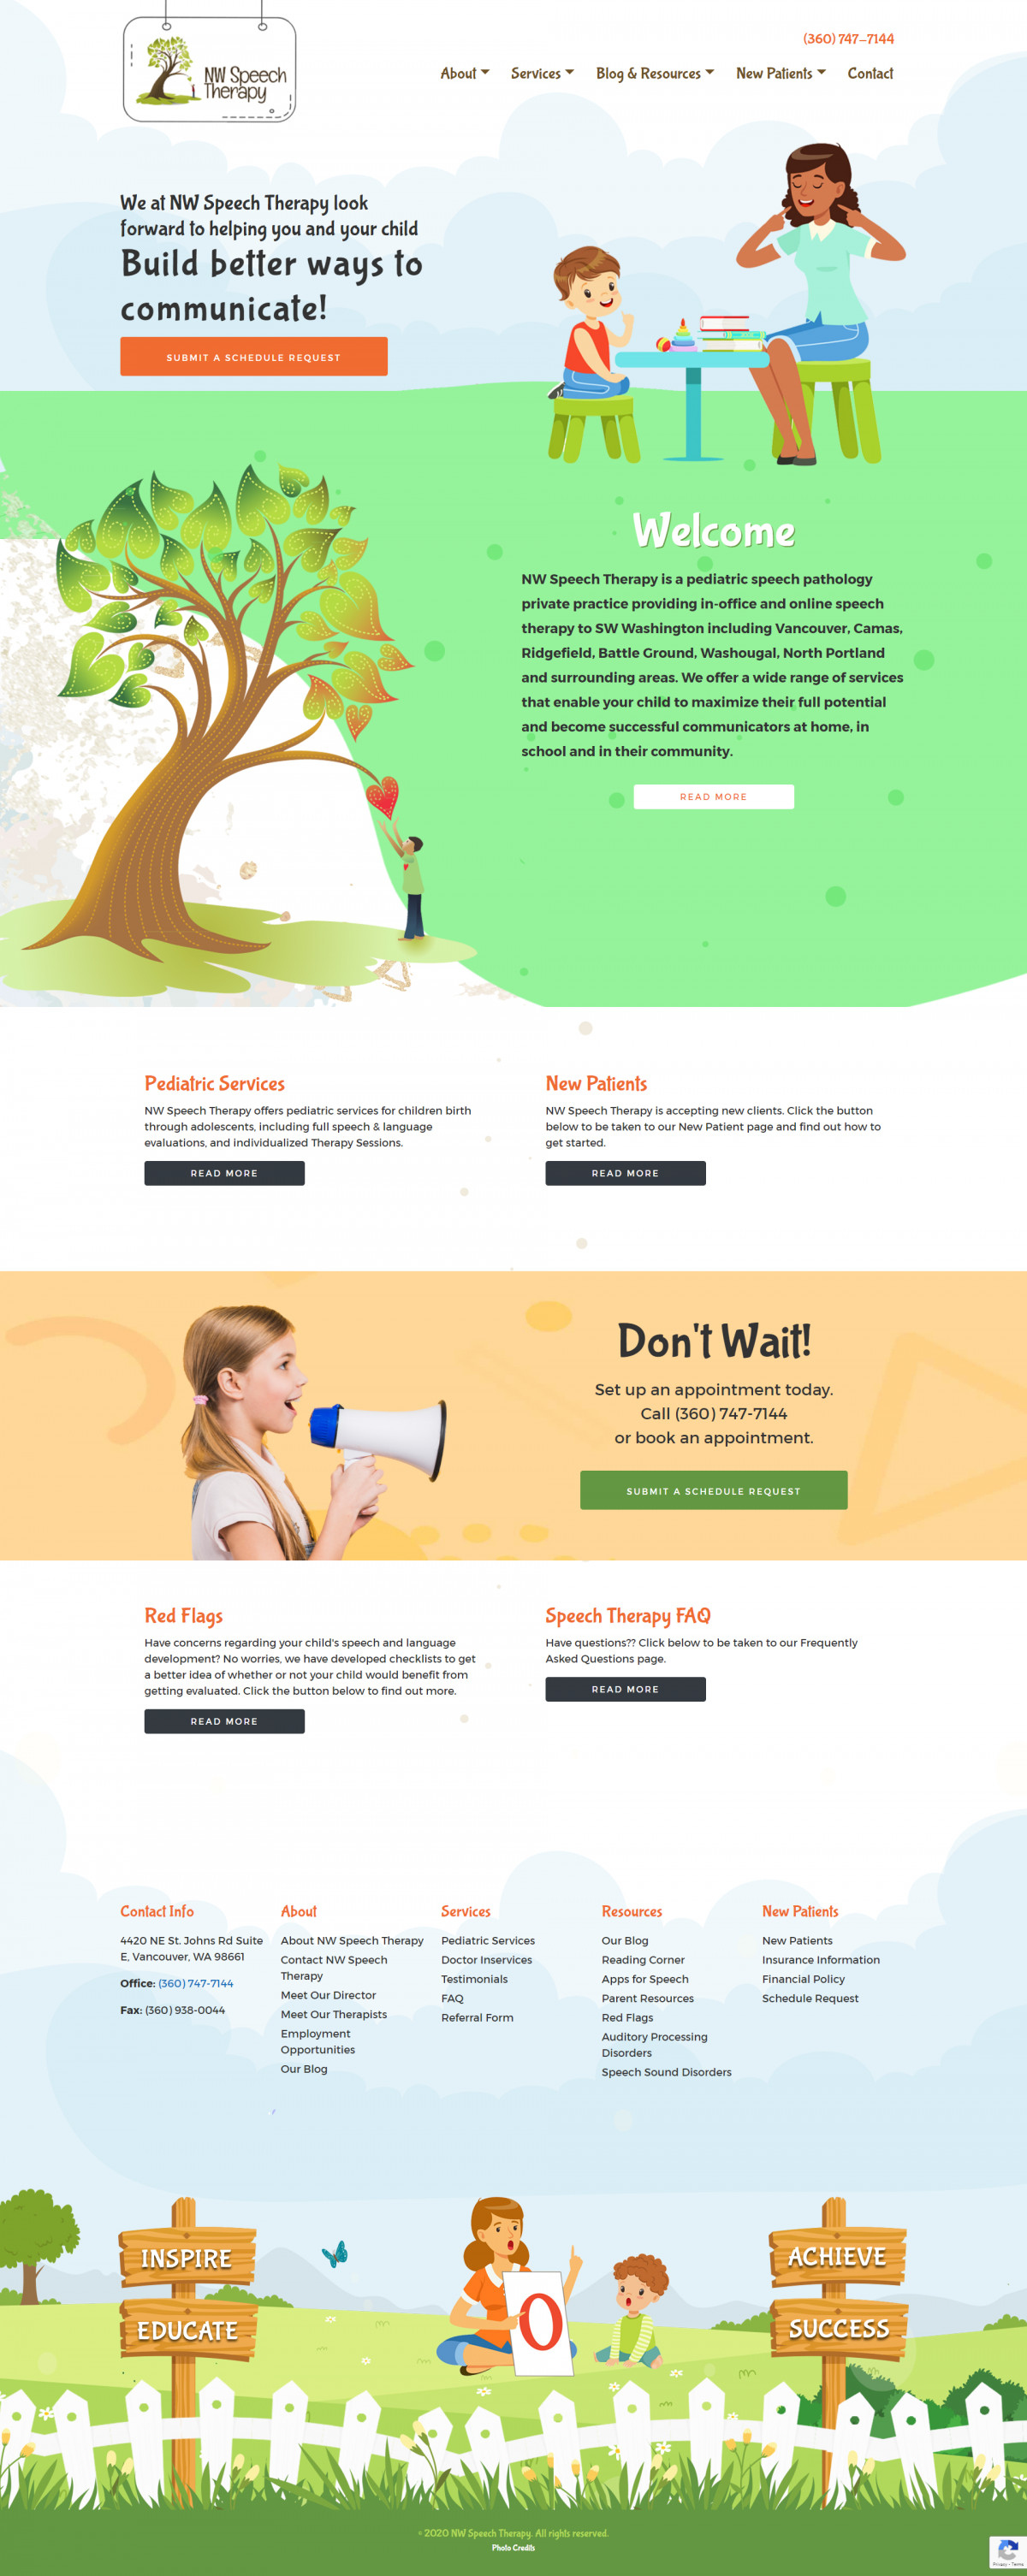 NW Speech Therapy Website Mockup